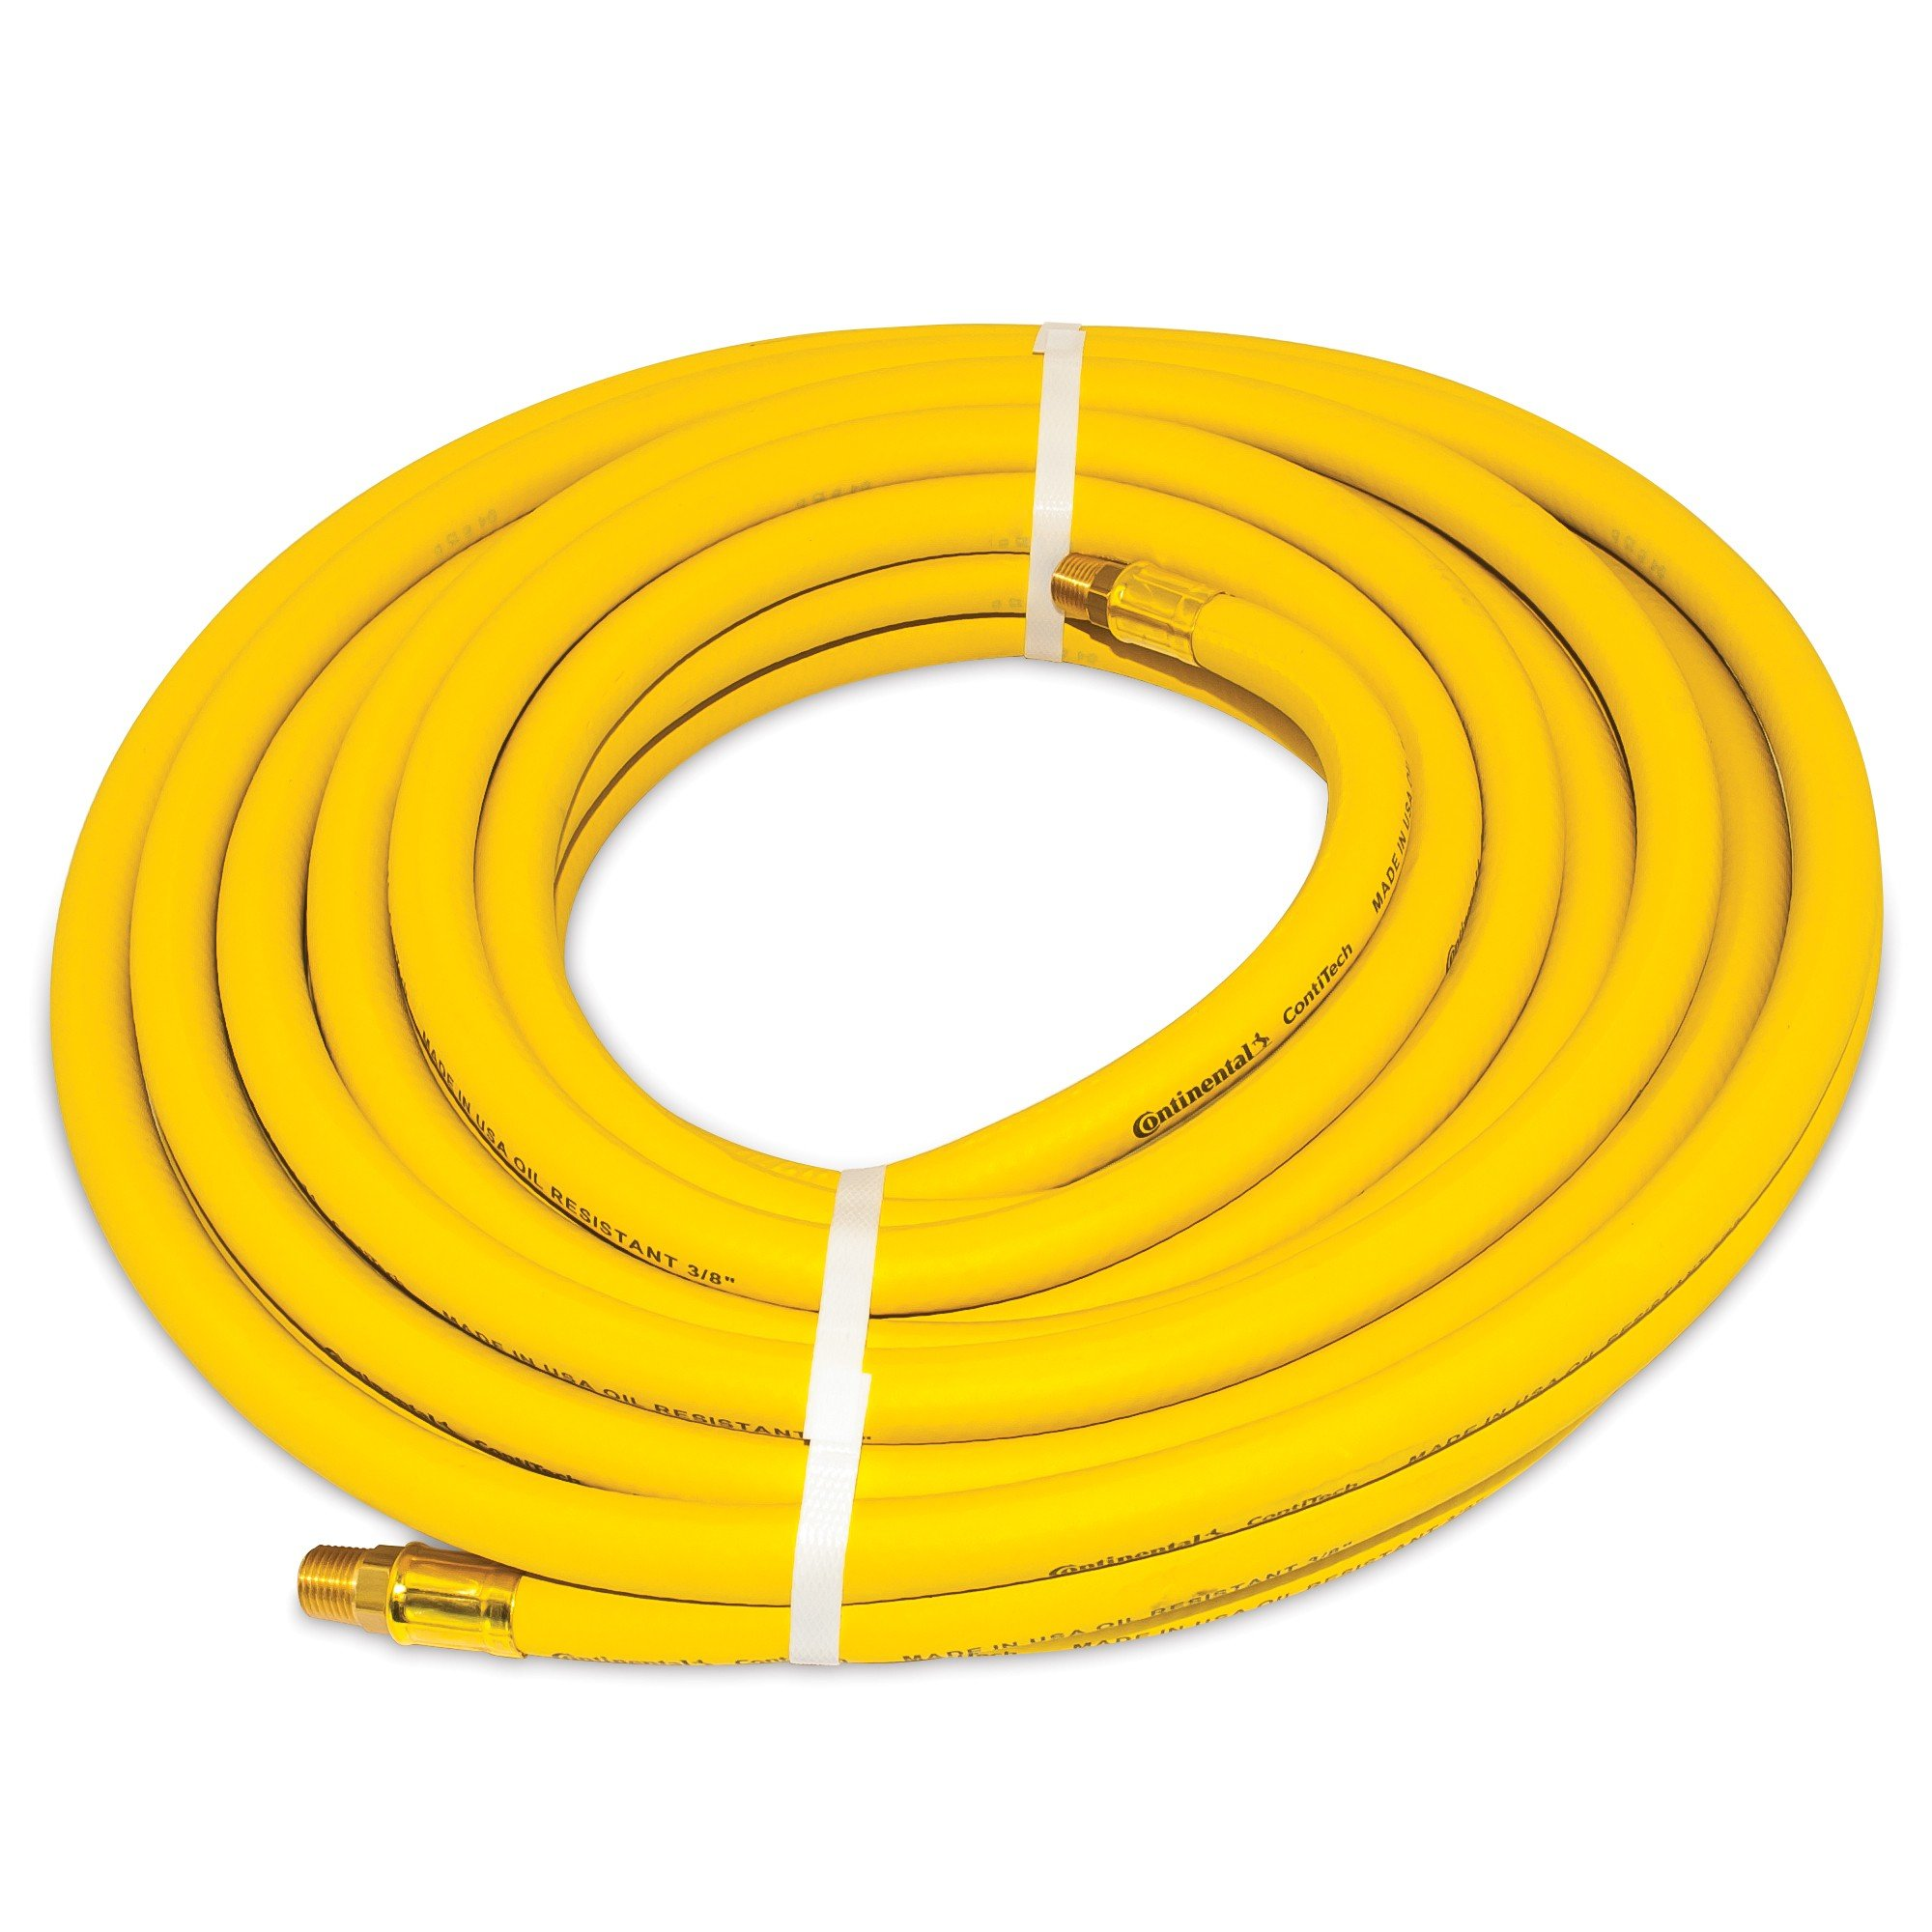 Continental 045 3/8-Inch-by-50-Feet Safety Yellow Rubber Hose 3/8 -Inch by 50-Feet 250 PSI With 1/4-Inch Ends